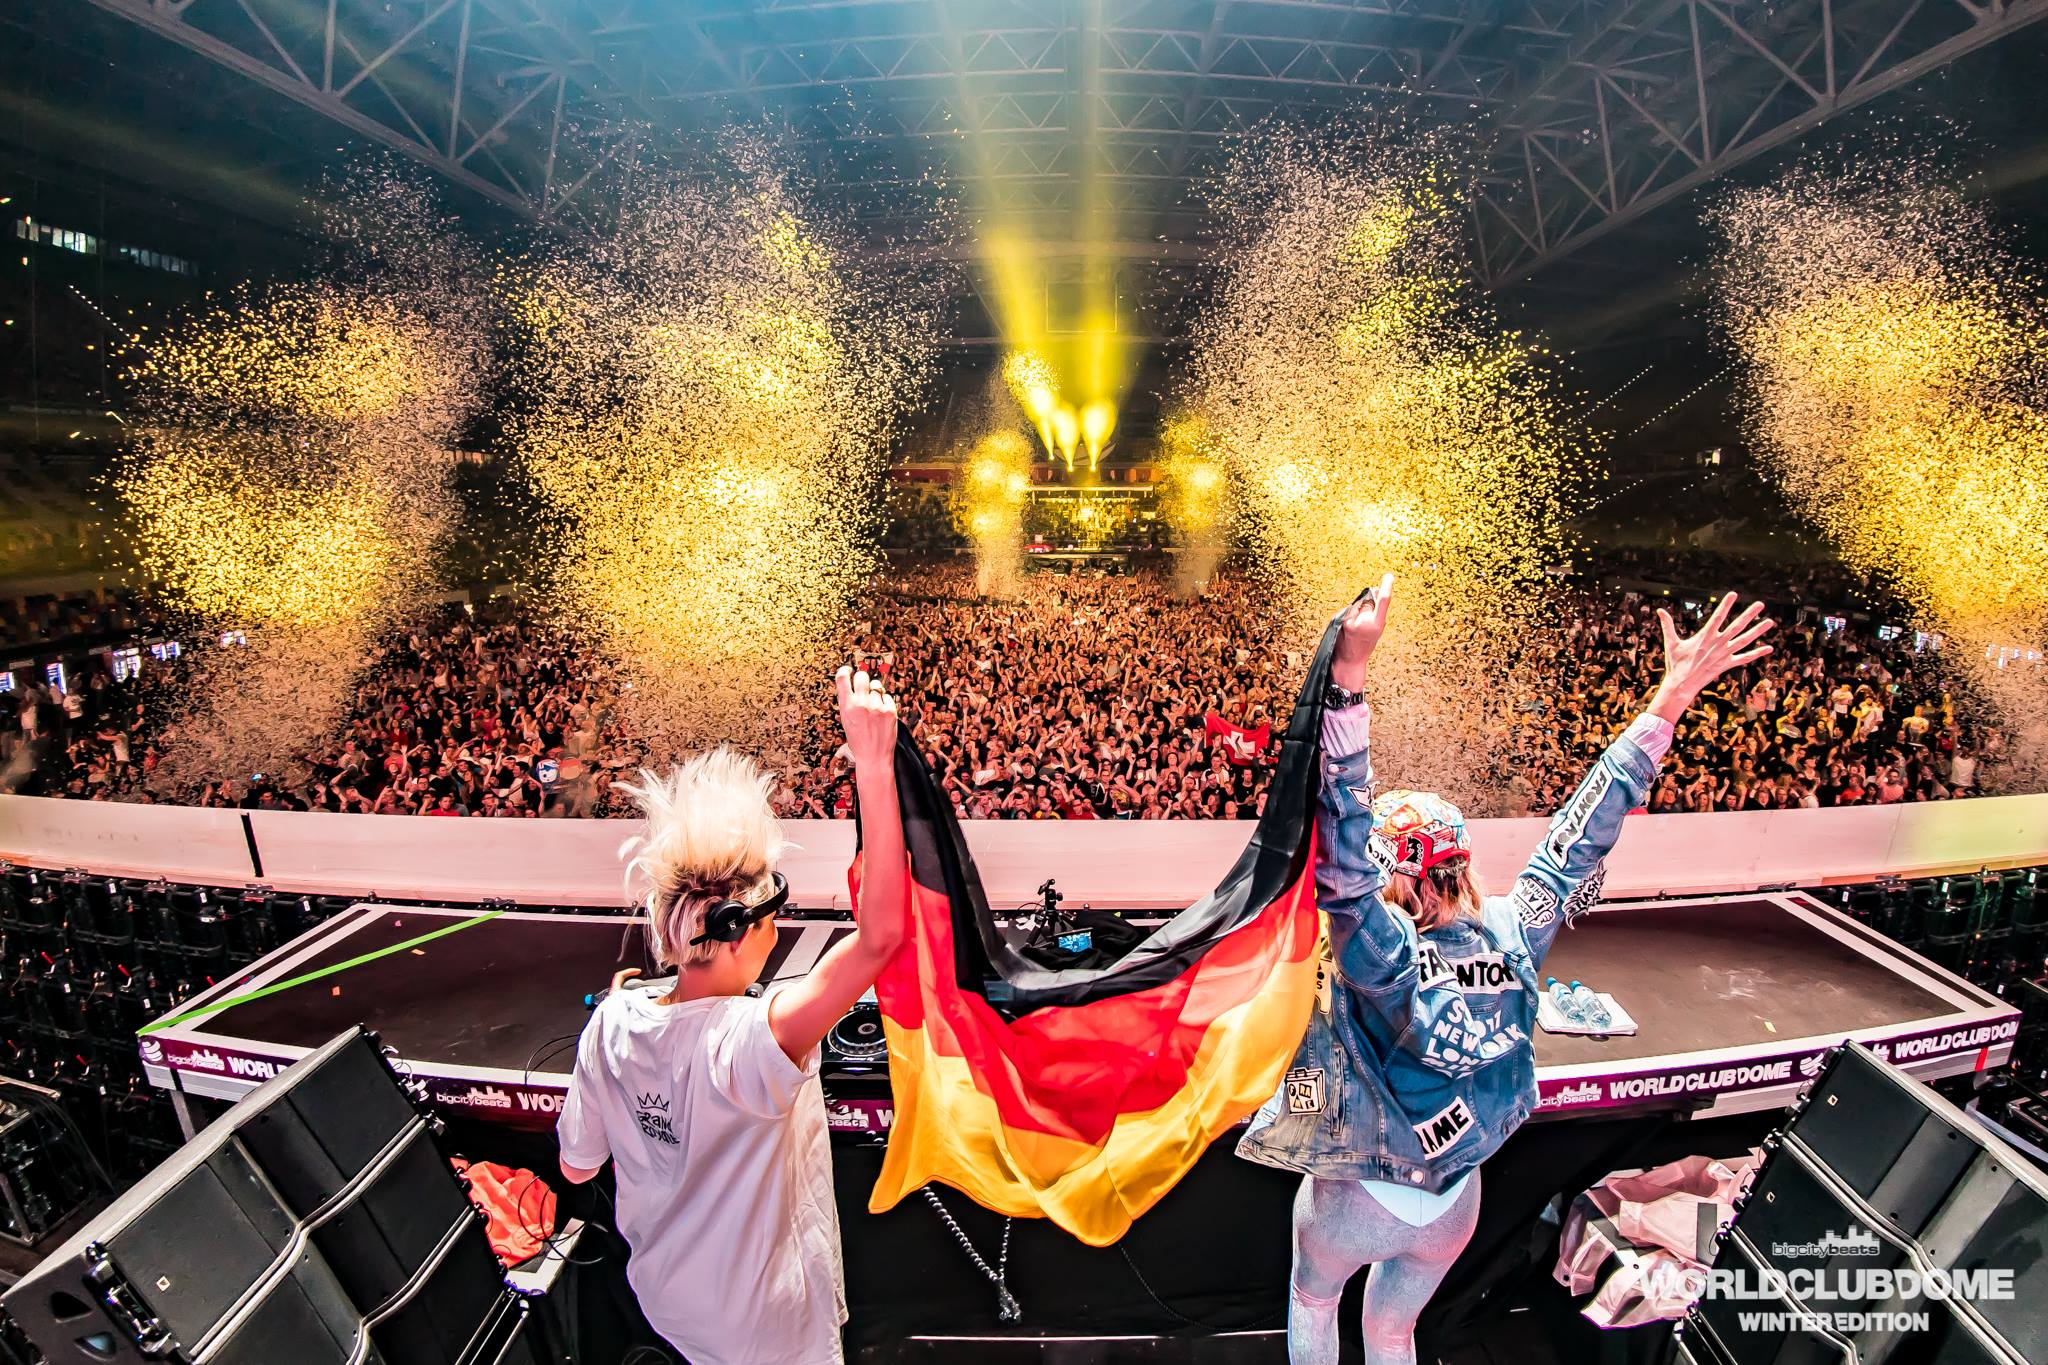 World Club Dome Winter Edition Nervo